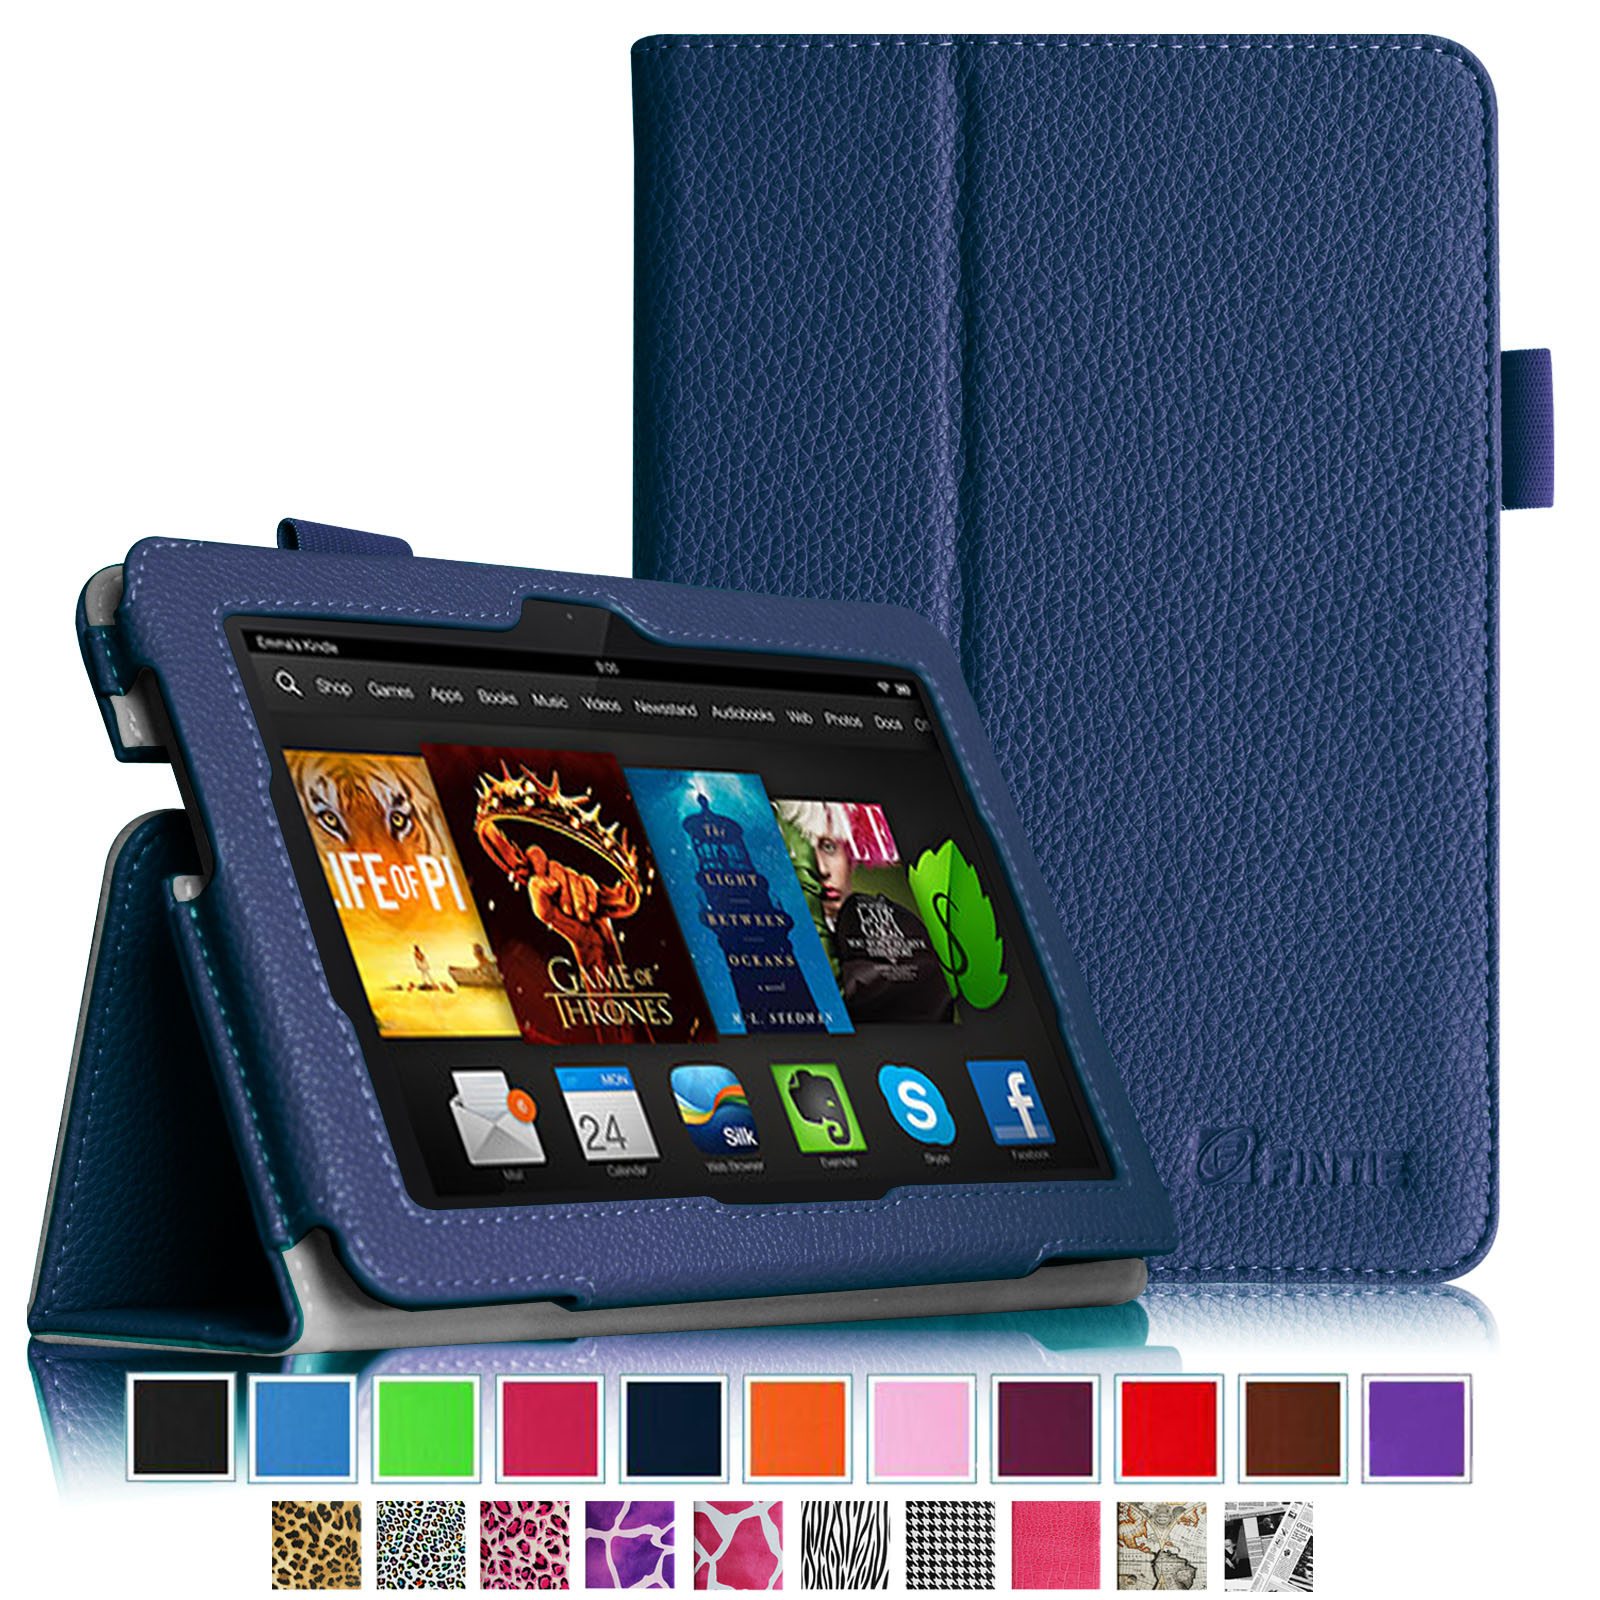 Fintie Folio Case for Kindle Fire HDX 7 - Slim Fit PU Leather Standing Cover with Auto Sleep/Wake, Navy